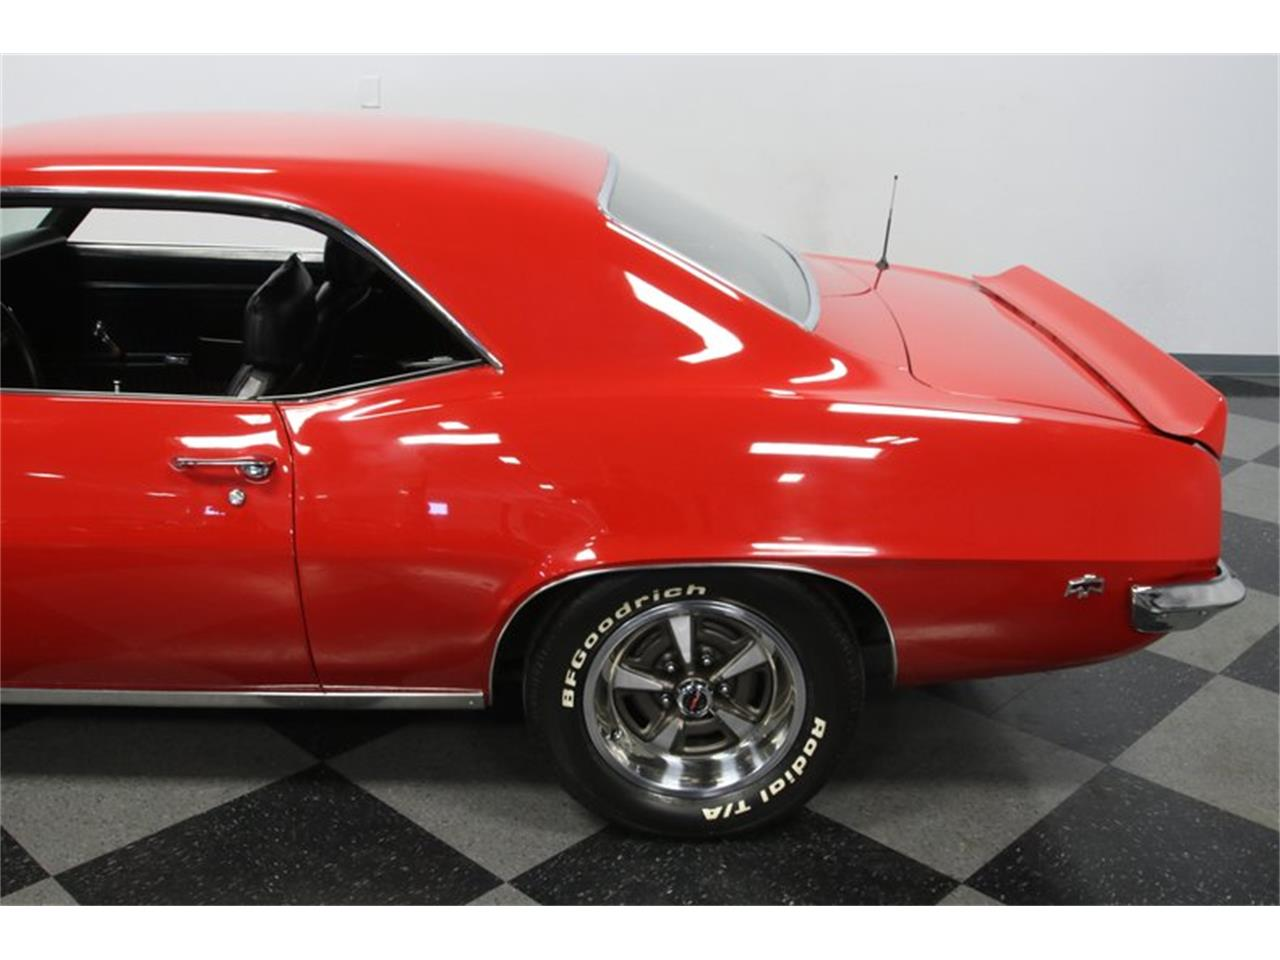 Large Picture of '69 Pontiac Firebird located in Concord North Carolina - $28,995.00 - PVY7